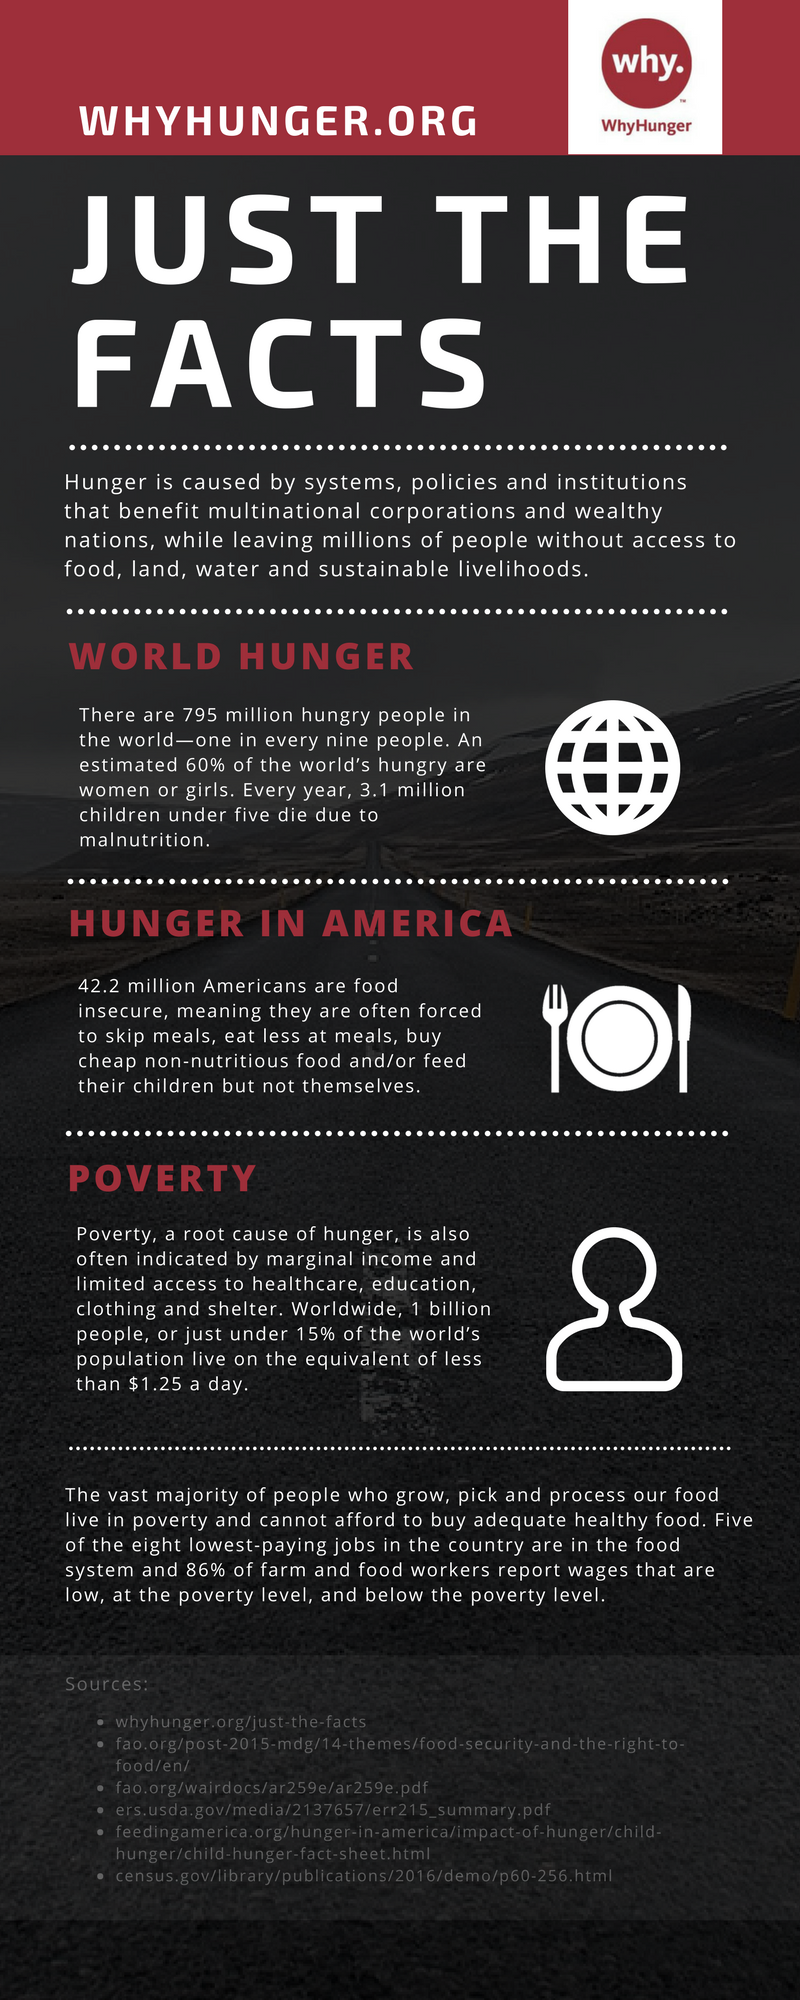 Why Hunger Just the Facts final